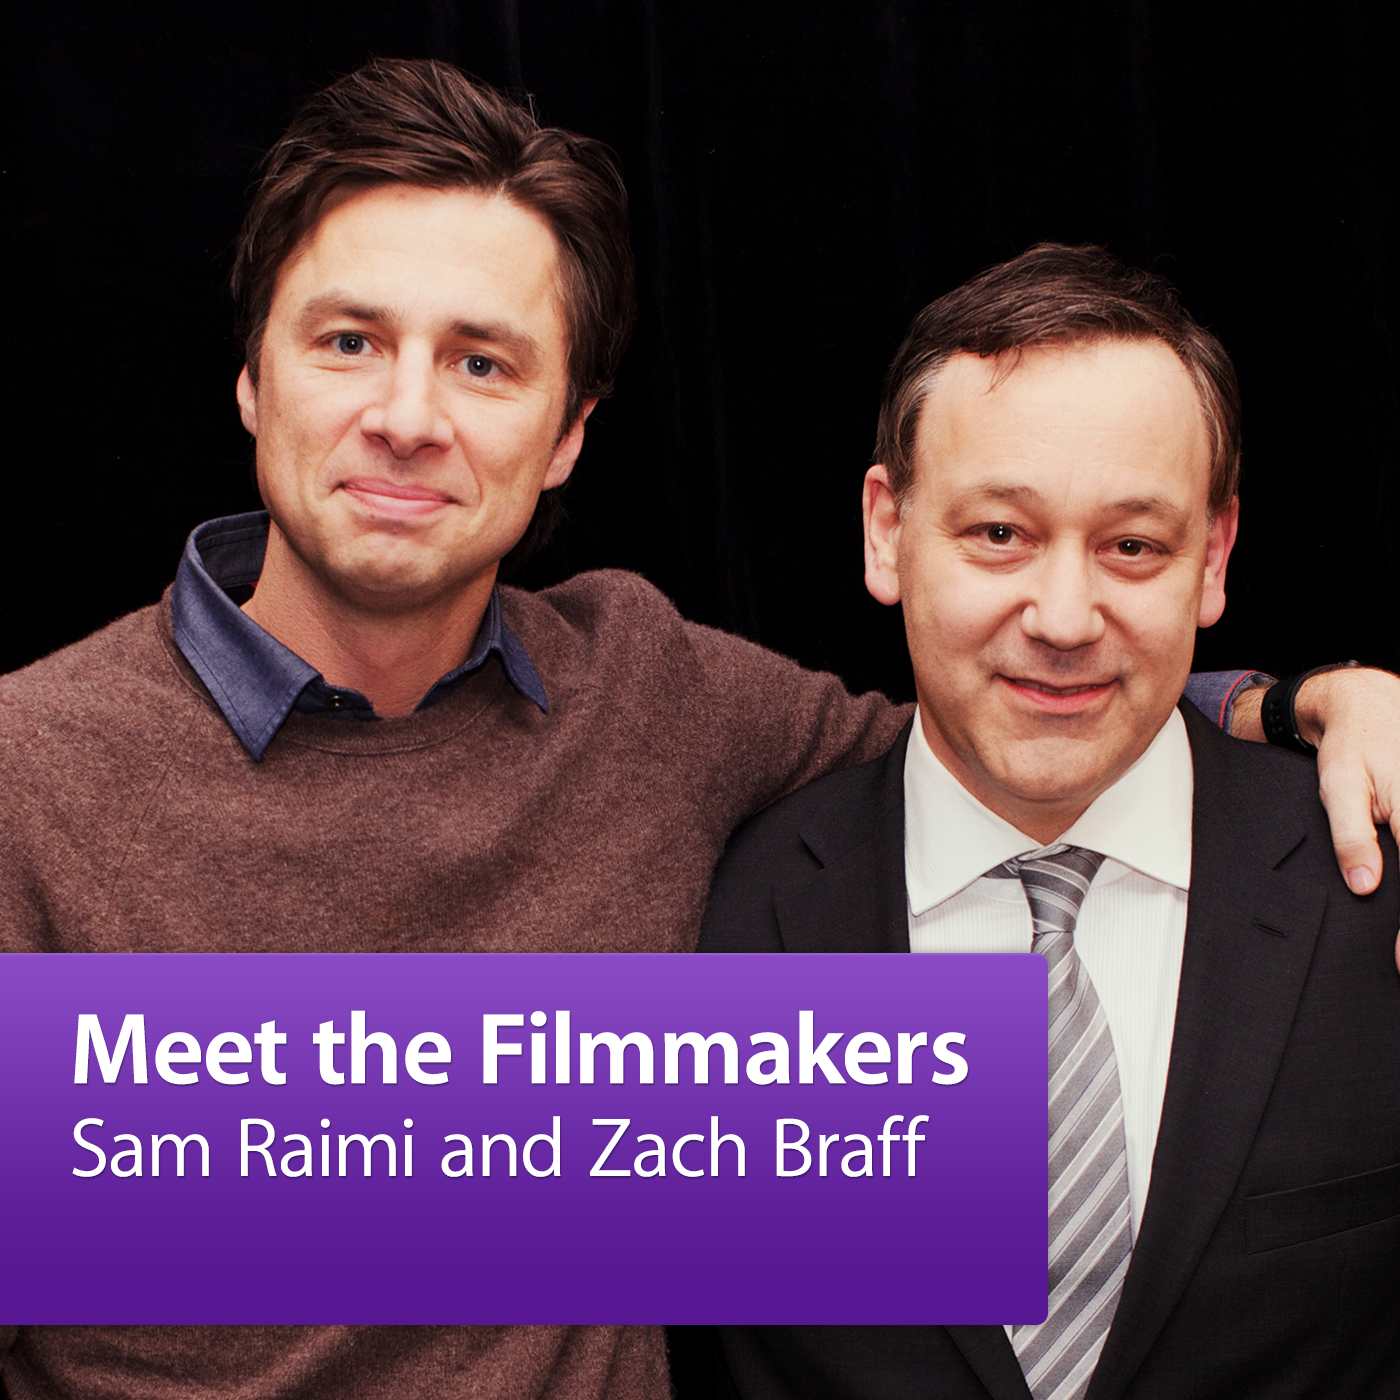 Zach Braff and Sam Raimi: Meet the Filmmakers